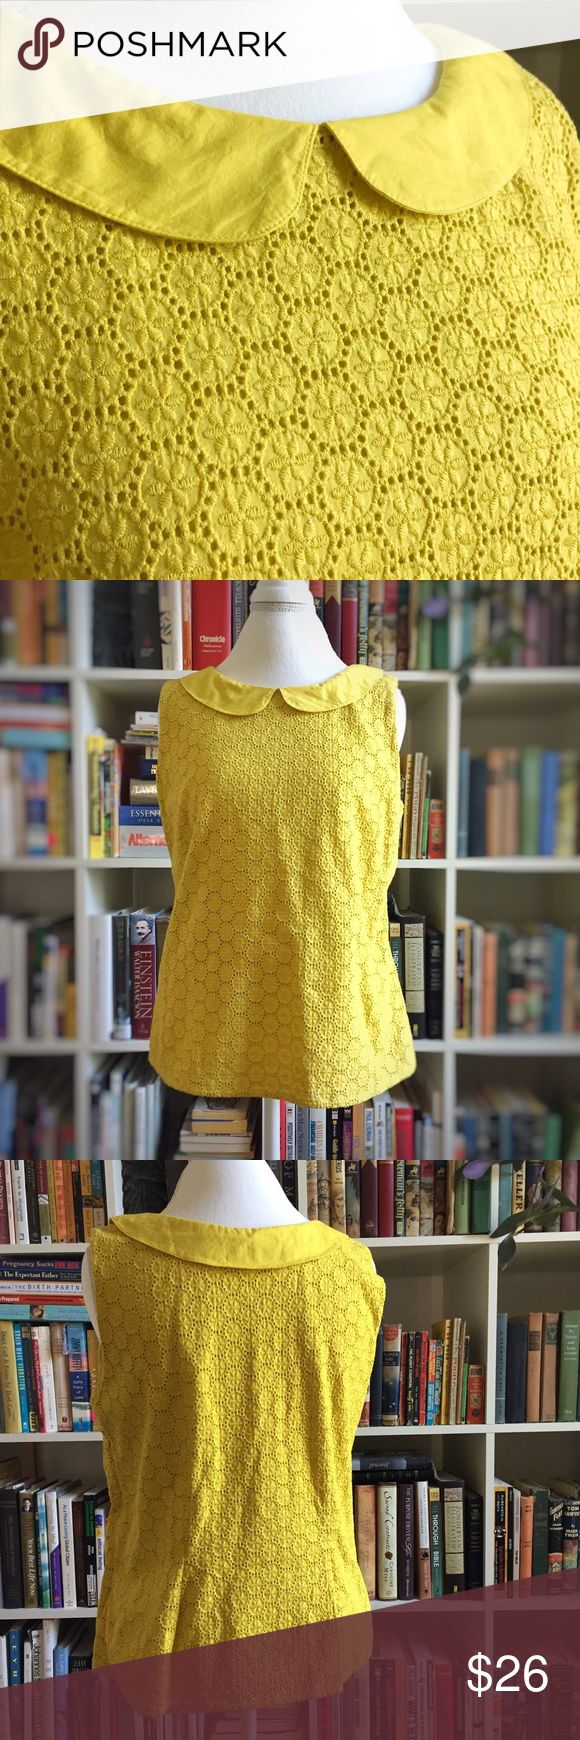 Boden yellow eyelet peter pan collar mod style top Freaking adorable sleeveless top by Boden. Eyelet outer layer with solid yellow lining. Side zip. Darts in the back for a fitted look around the bottom. 100% cotton. 23.5 inches shoulder to bottom, 19.5 inches underarm to underarm. Boden Tops